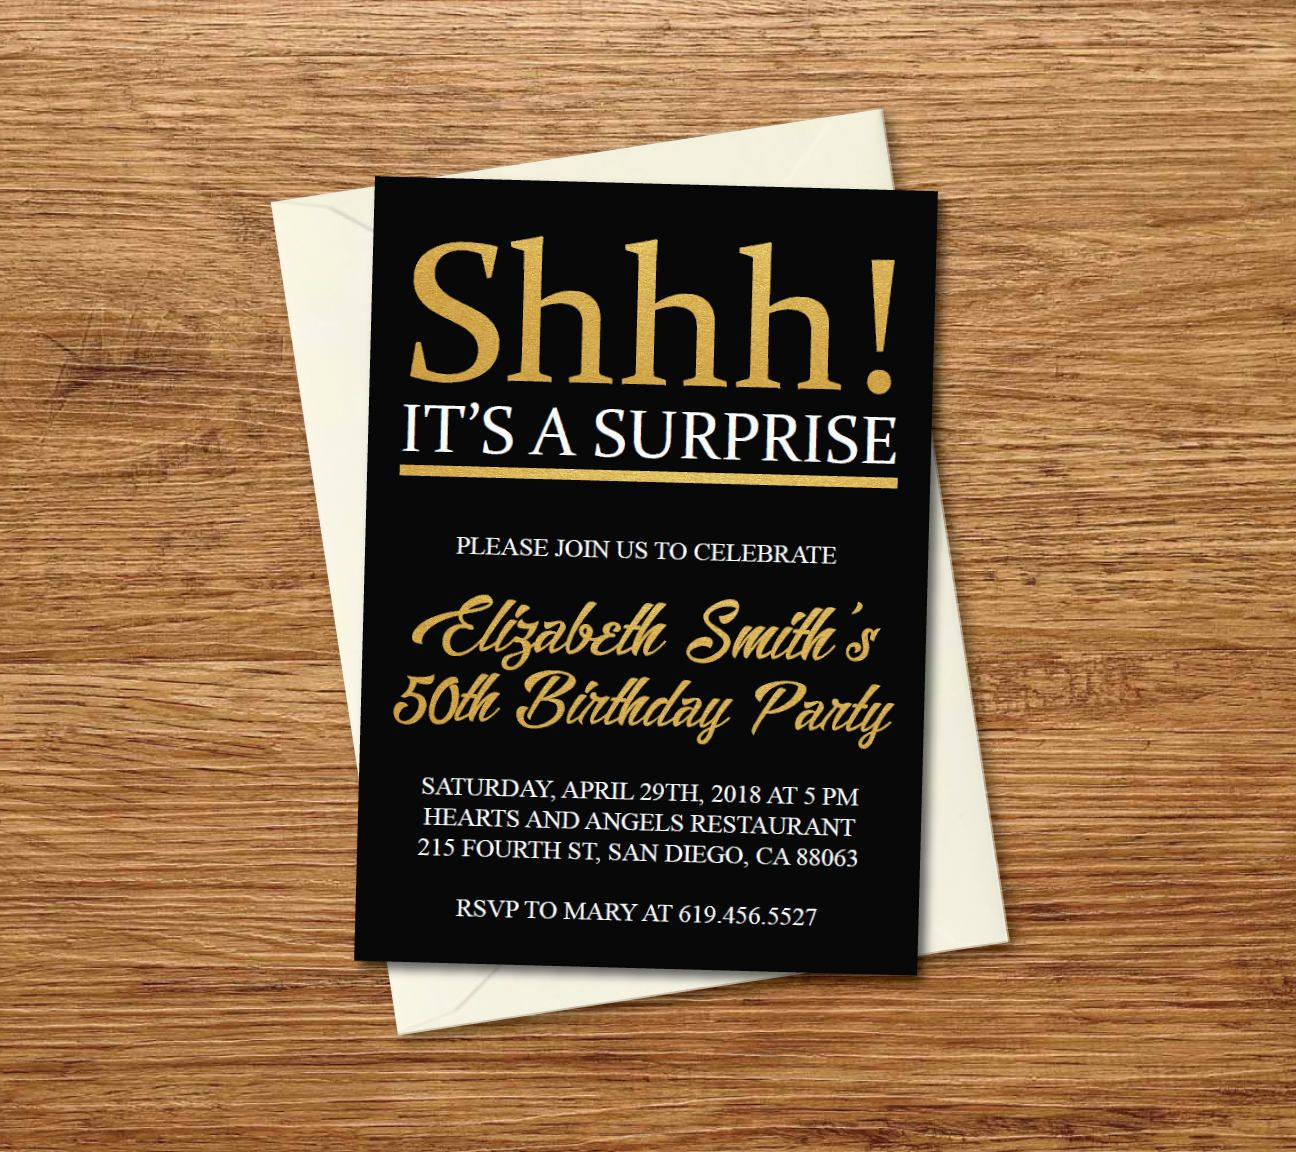 Shhh Its A Surprise Birthday Invitation Printable Gold Black E Card Template By BlessedDayPaper On